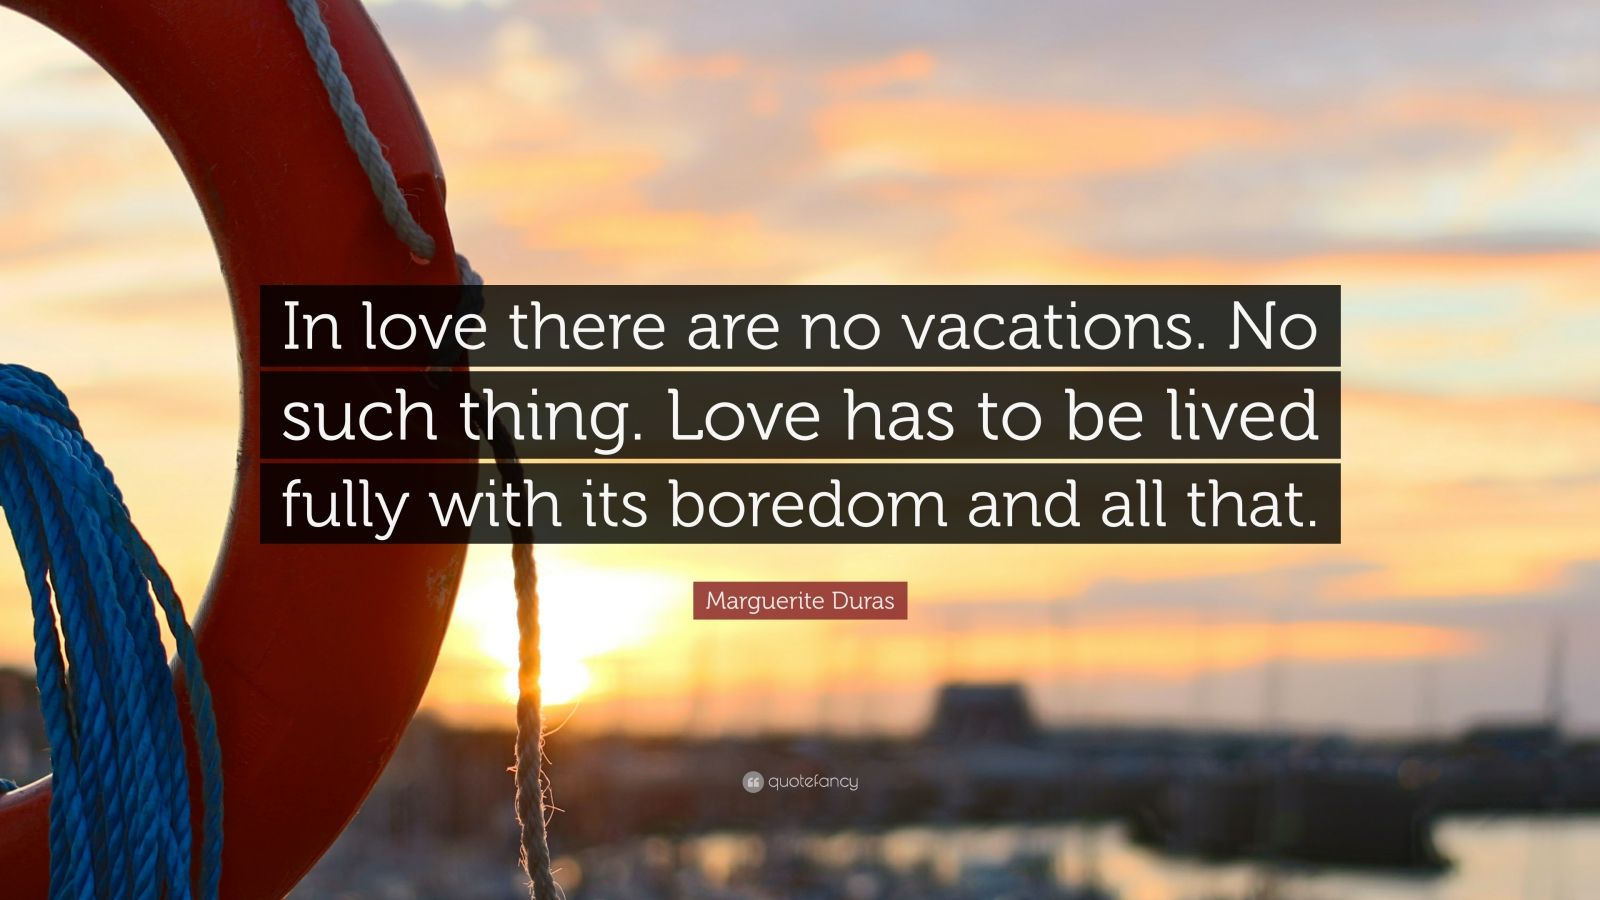 """Marguerite Duras Quote: """"In love there are no vacations. No such thing. Love has to be lived fully with its boredom and all that."""""""